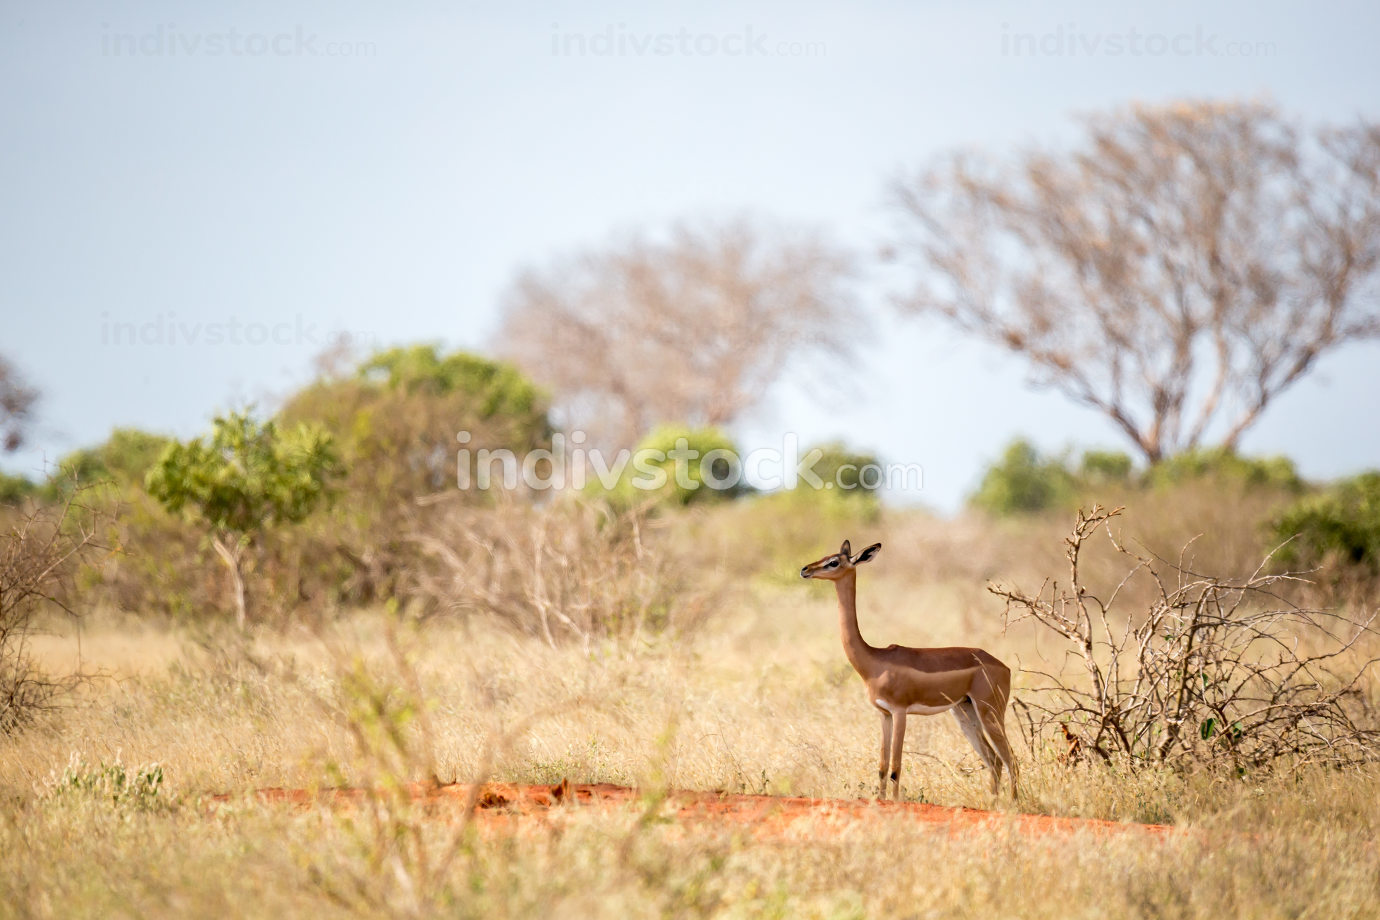 An antelope with a log neck is standing between the bush and watching